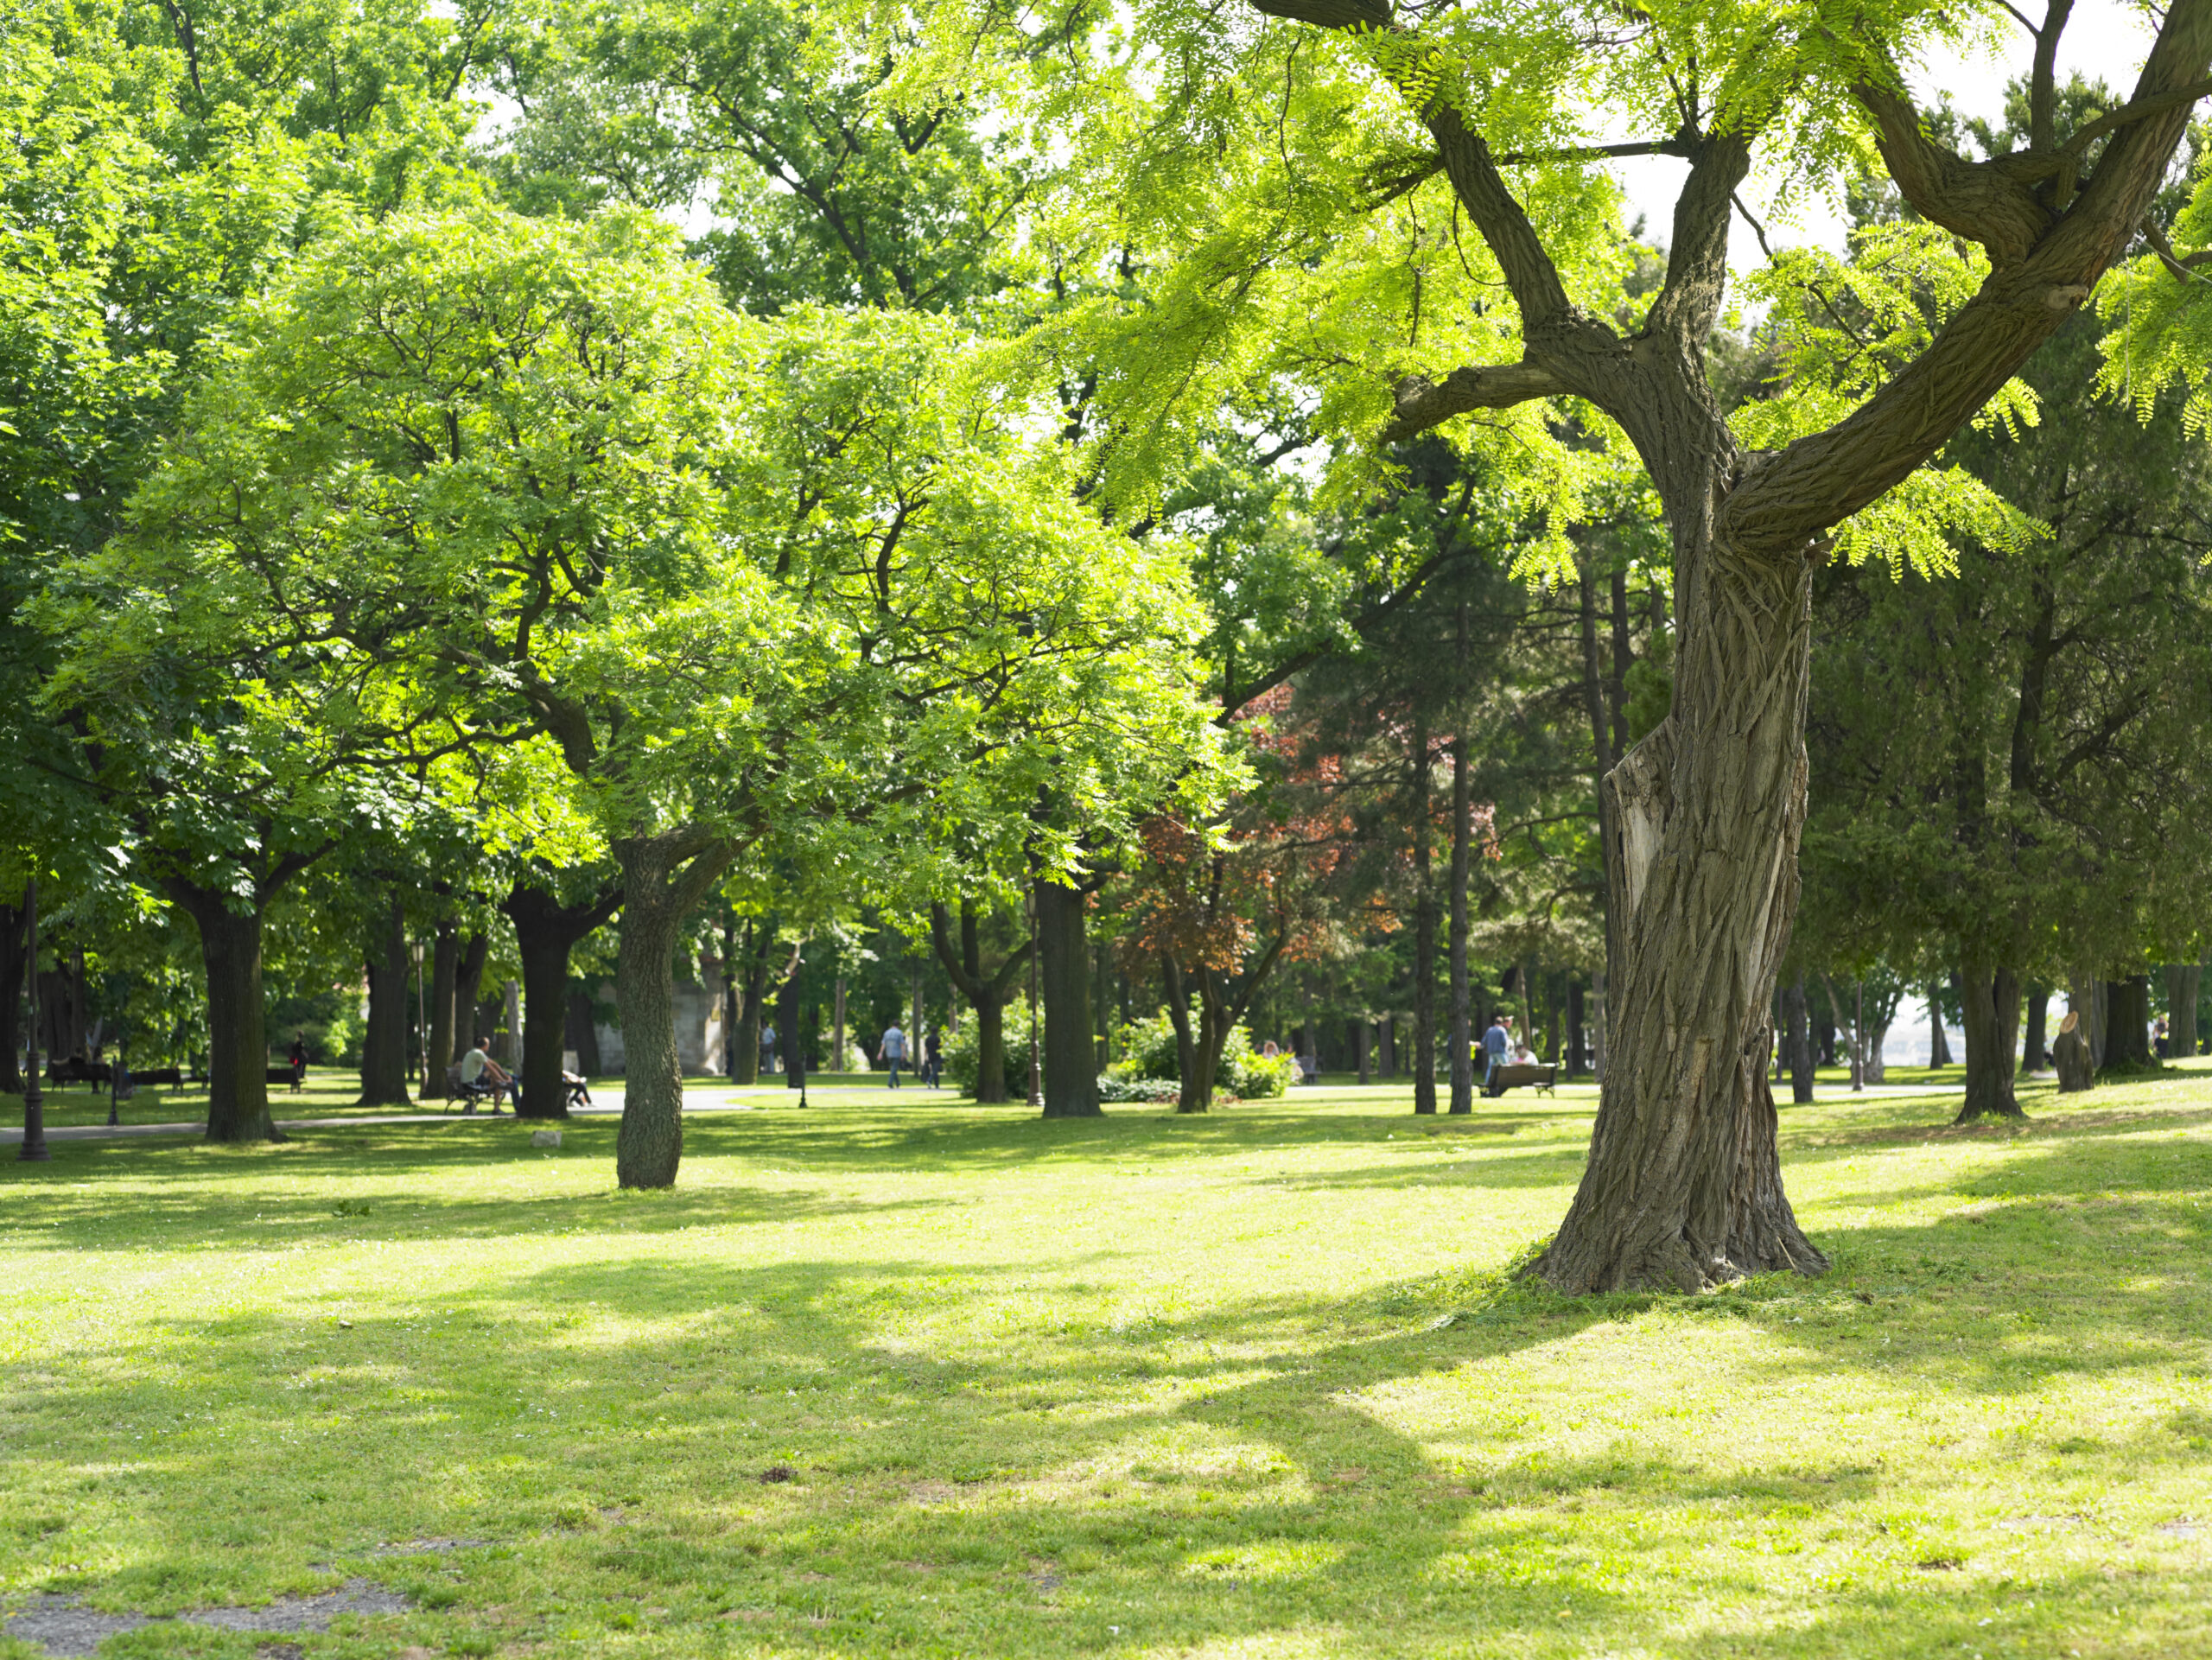 Sunny Green Park and beautiful day in nature